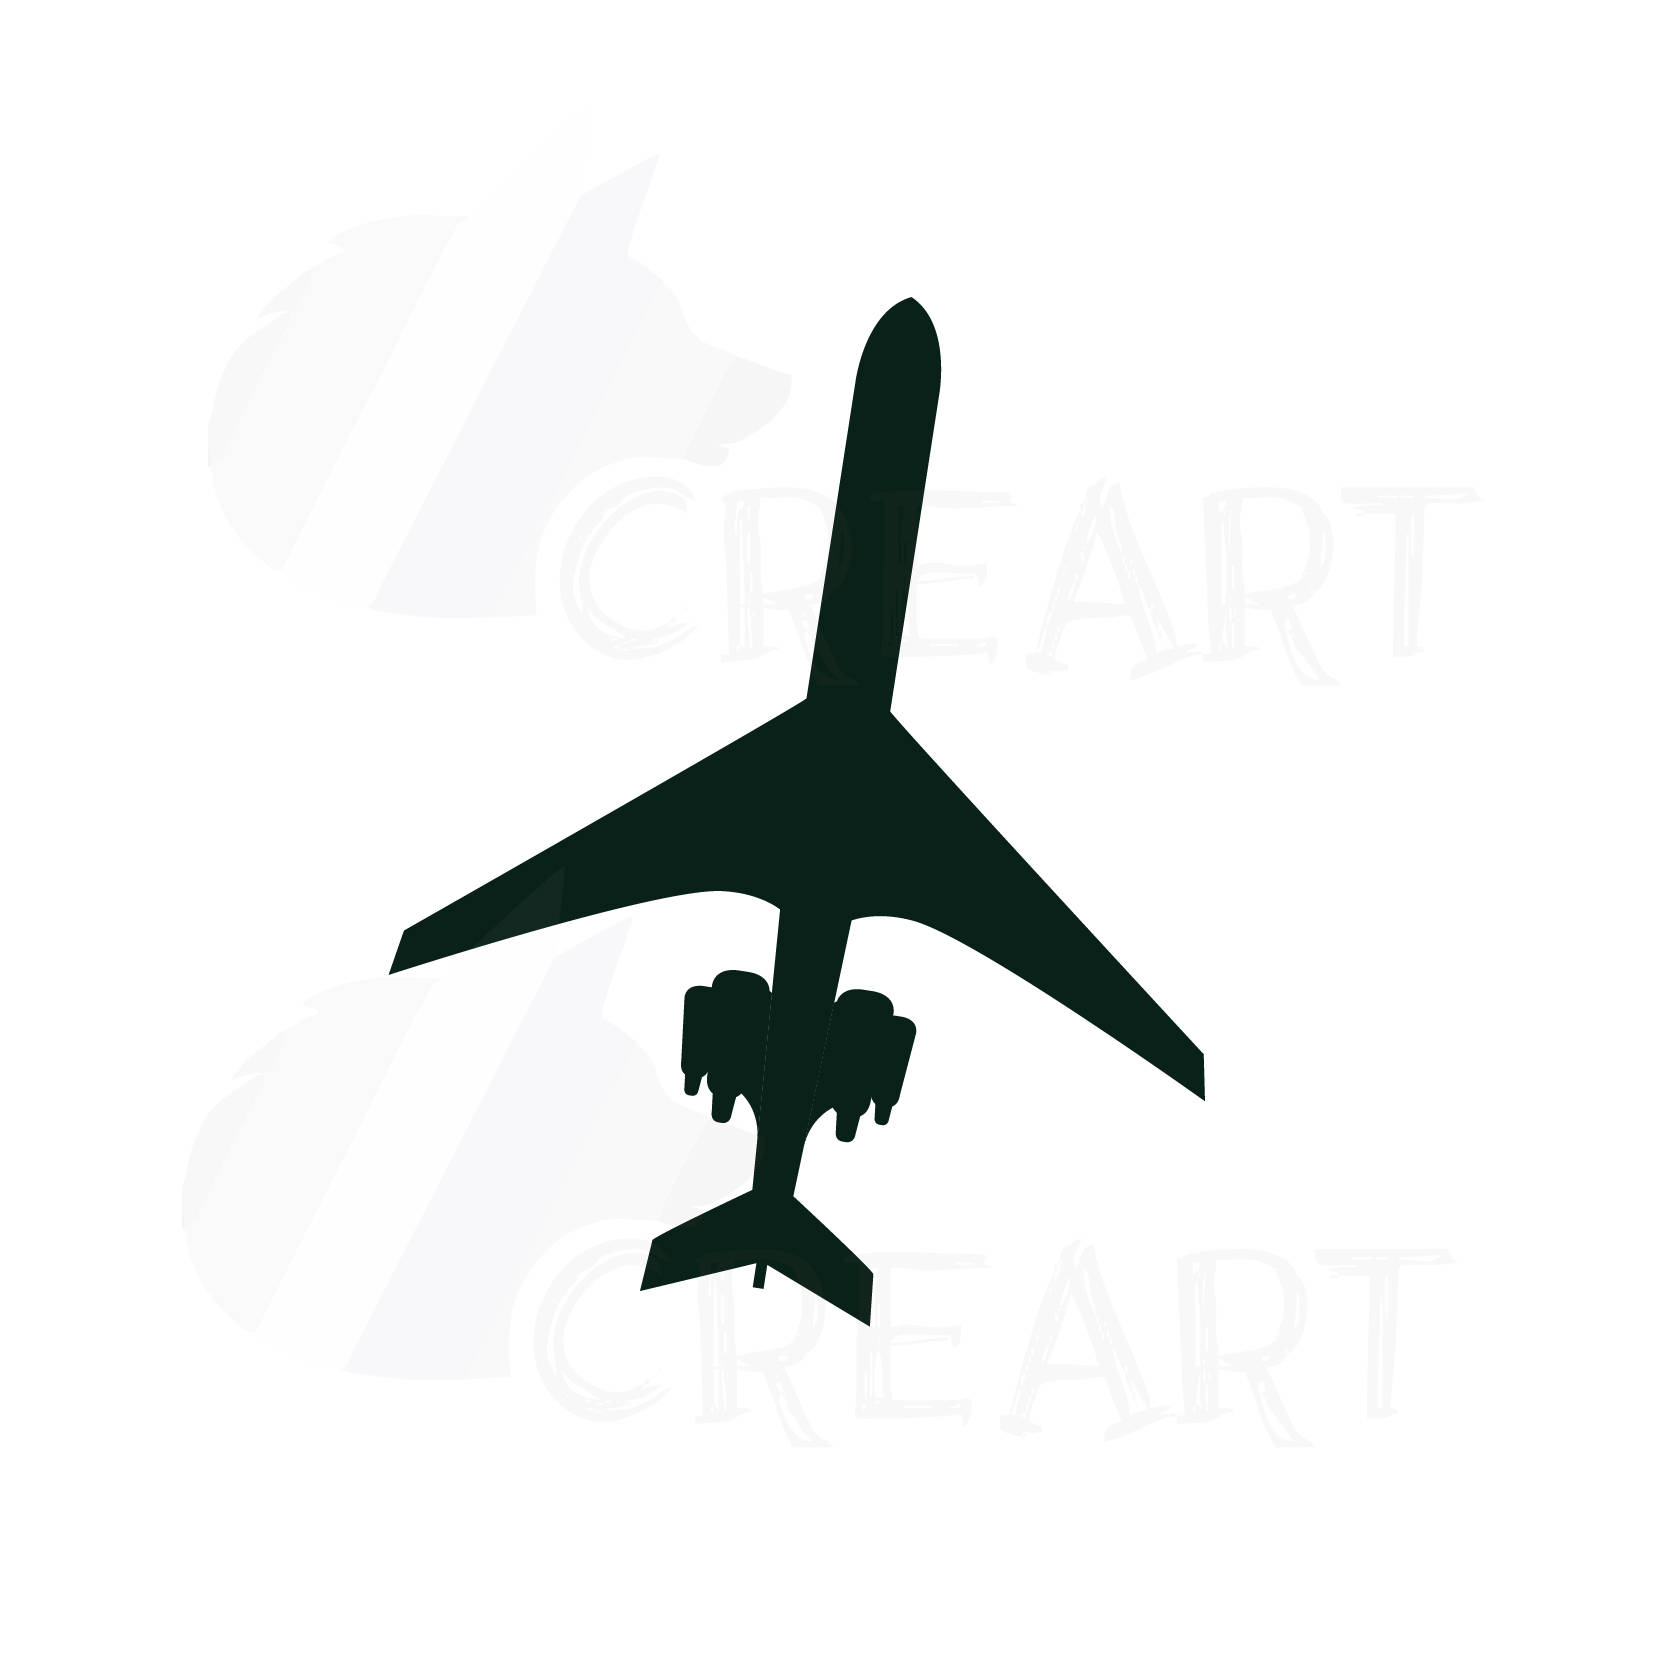 1667x1667 Airplane Silhouette Pack, Airplane Clipart. Eps, Png, Jpg, Pdf